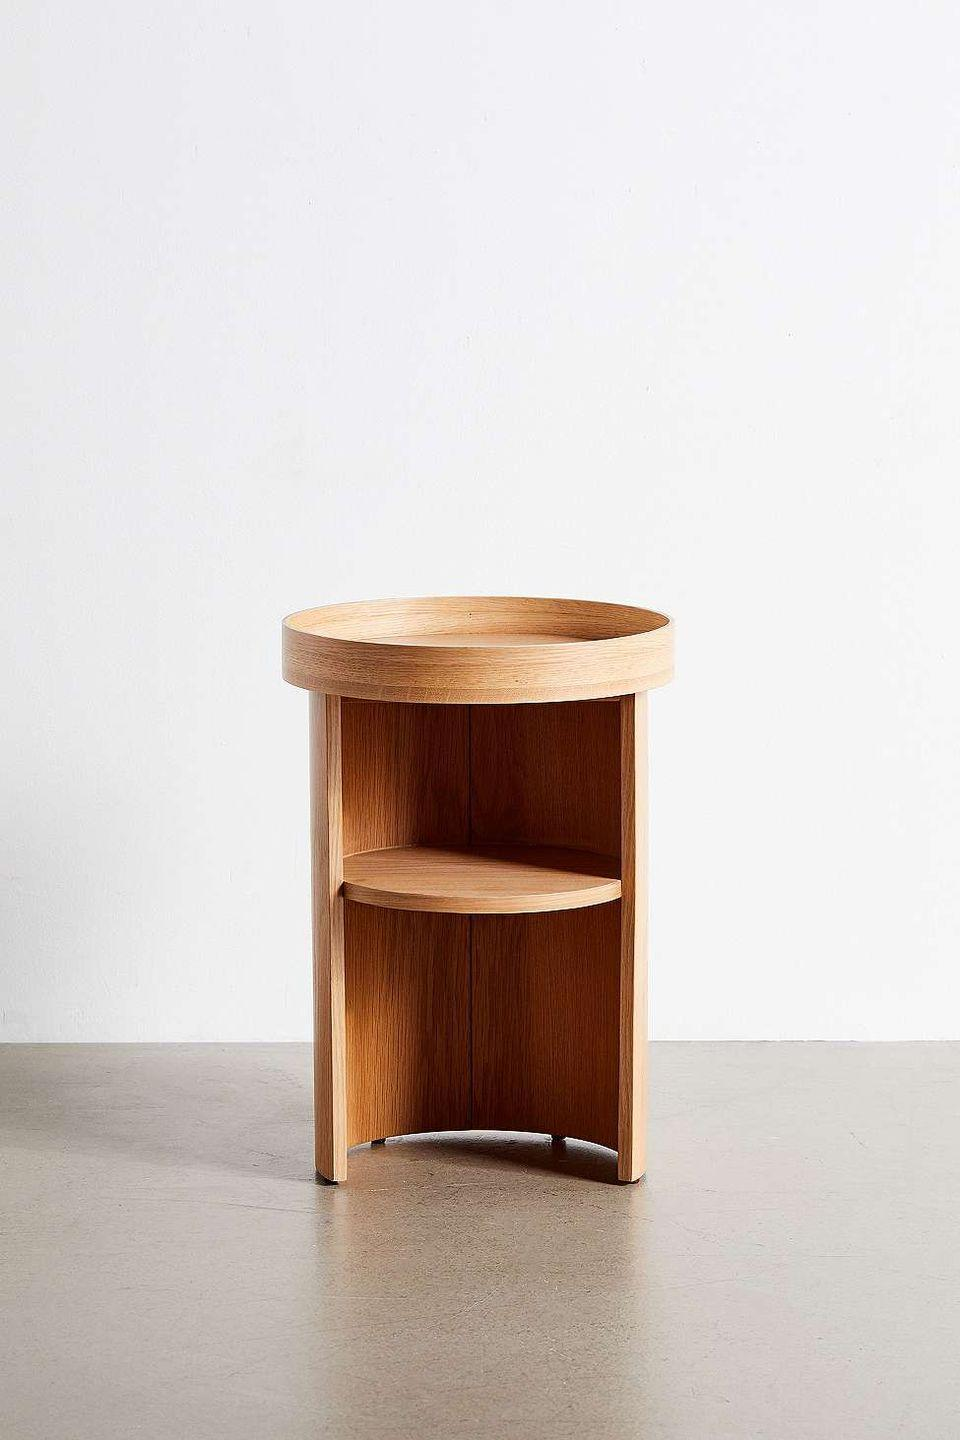 """<p>The lower shelf of this well-proportioned side table is a practical second surface for books, alarm clocks et al, while the tray-style top and enclosed sides grant a sense of order and visual calm. It will slot into the corner of a living room as happily as beside a bed. £99, <a href=""""https://go.redirectingat.com?id=127X1599956&url=https%3A%2F%2Fwww.urbanoutfitters.com%2F&sref=https%3A%2F%2Felledecoration.co.uk%2Fdesign%2Fg37395542%2Fside-table%2F"""" rel=""""nofollow noopener"""" target=""""_blank"""" data-ylk=""""slk:urbanoutfitters.com"""" class=""""link rapid-noclick-resp"""">urbanoutfitters.com</a></p>"""